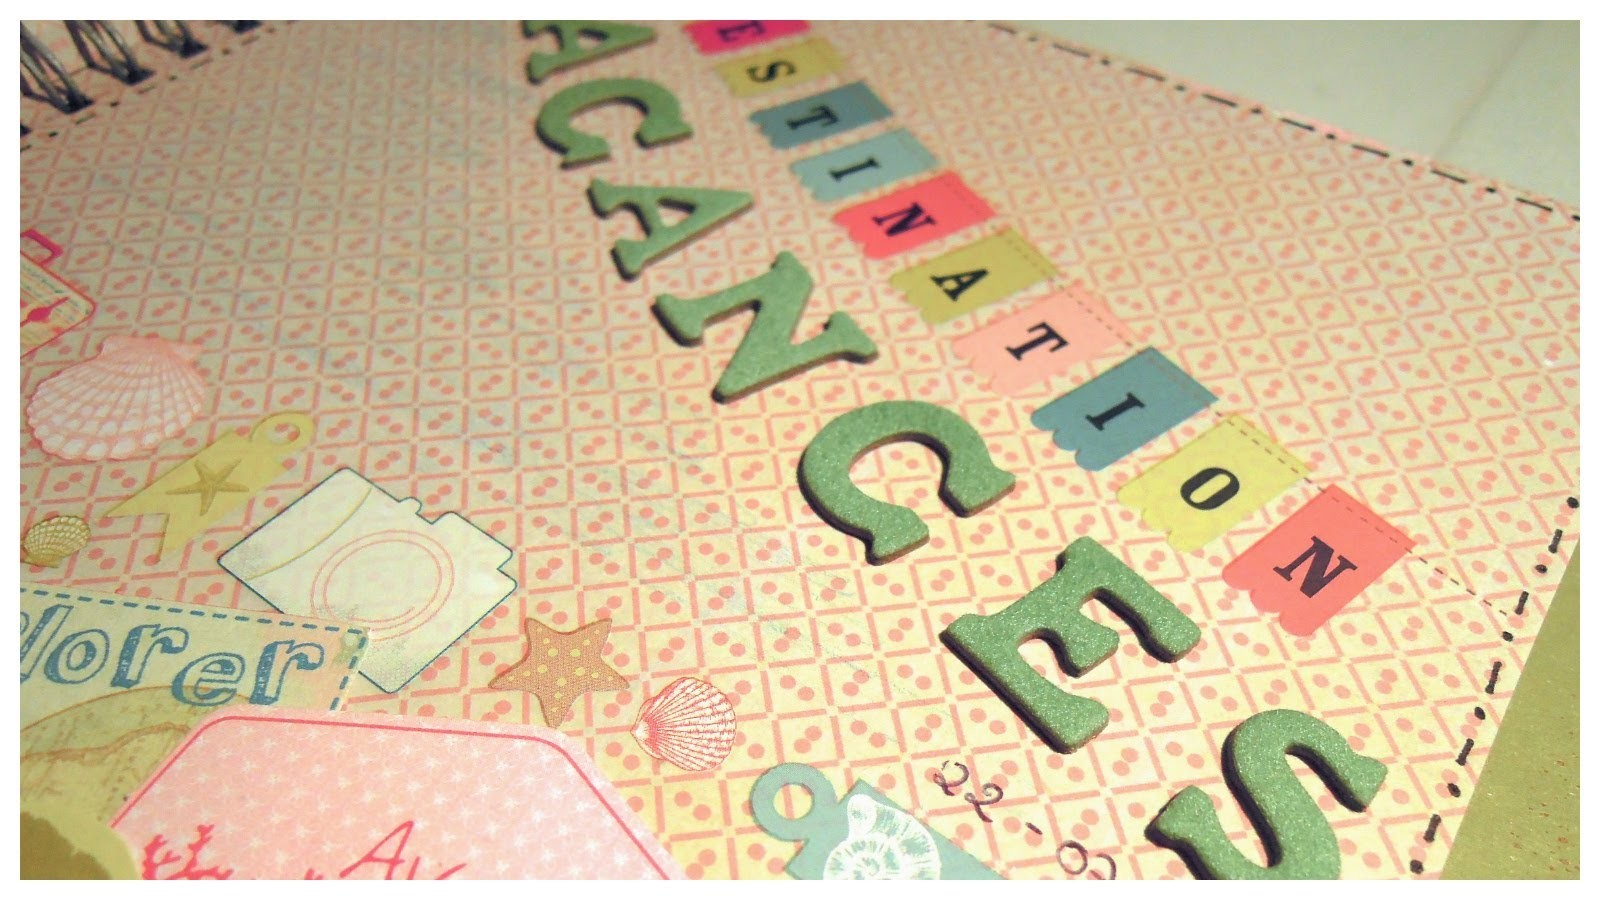 Smash Book Terapia: 22.07.13 *Cómo hacer un diario de Scrap* Smash book tutorial